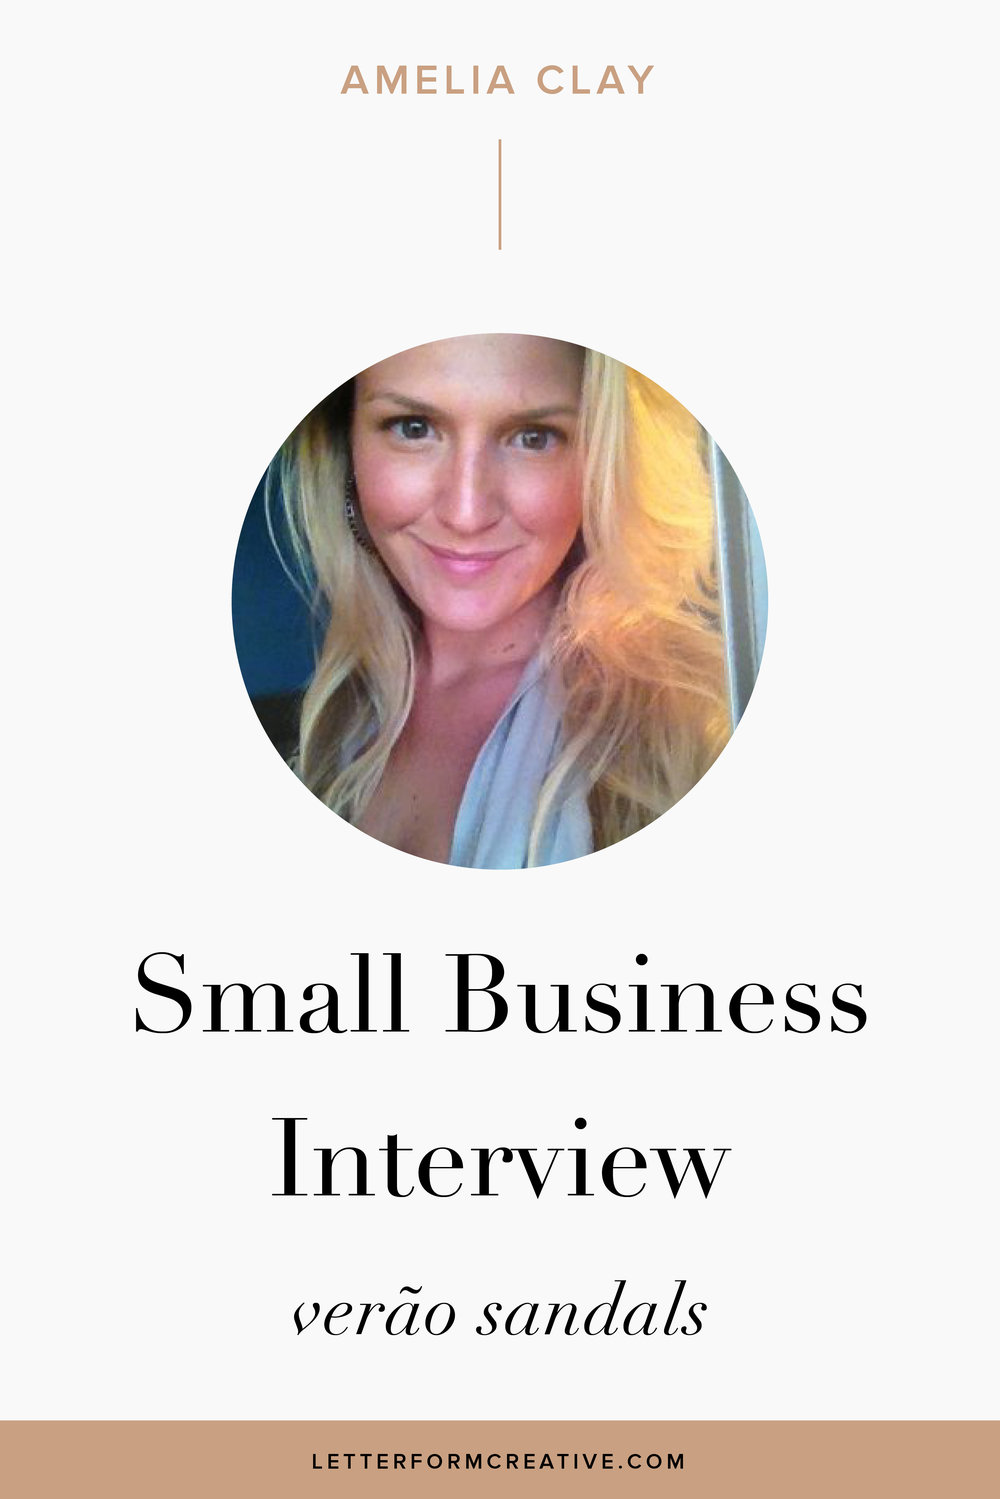 """Really learn to enjoy the journey to the goal you've set out, celebrate the small wins, still make time for your personal life and keep at it!"" That is one of many great quotes from my interview with Small Business owner, Amelia Clay!  As a fashion Entrepreneur Amelia is familiar with the ups and downs of owning a business. She discusses some of her favorite marketing tips and ideas, discusses where she finds her inspiration, and opens up about the difficulties of financially backing a start up and pricing your product. She knows the value of mentorship, goal-setting, and making a vision board. Click through for more small business wisdom and insight!"